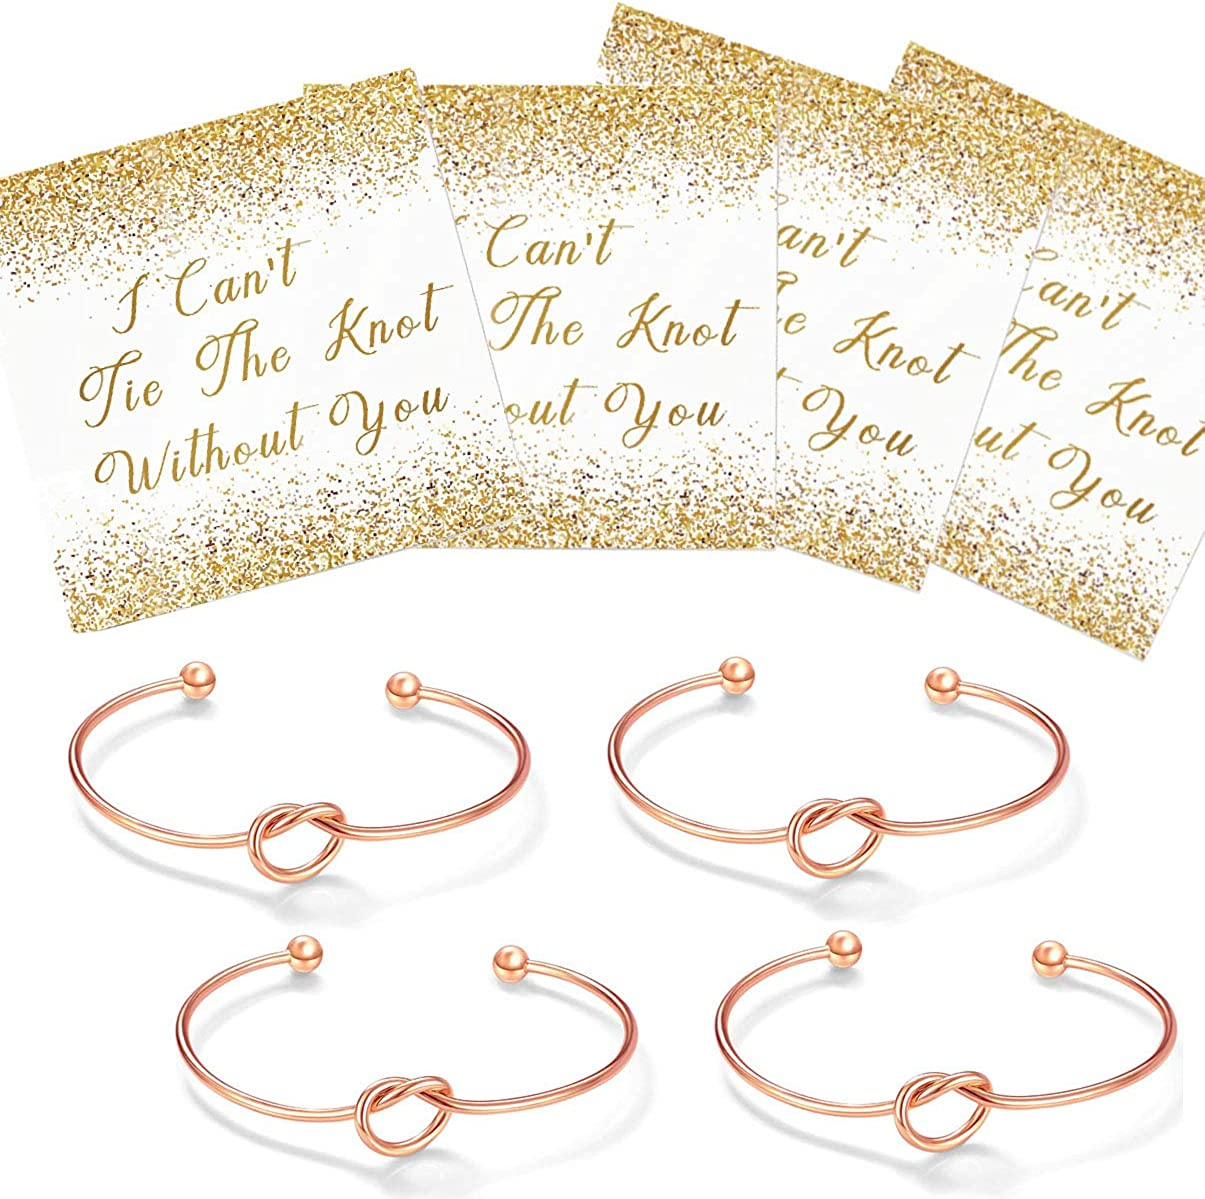 10 I Cant Tie The Knot Without You Bracelets -Set of 1 7 4 Bridesmaid Gifts 6 5